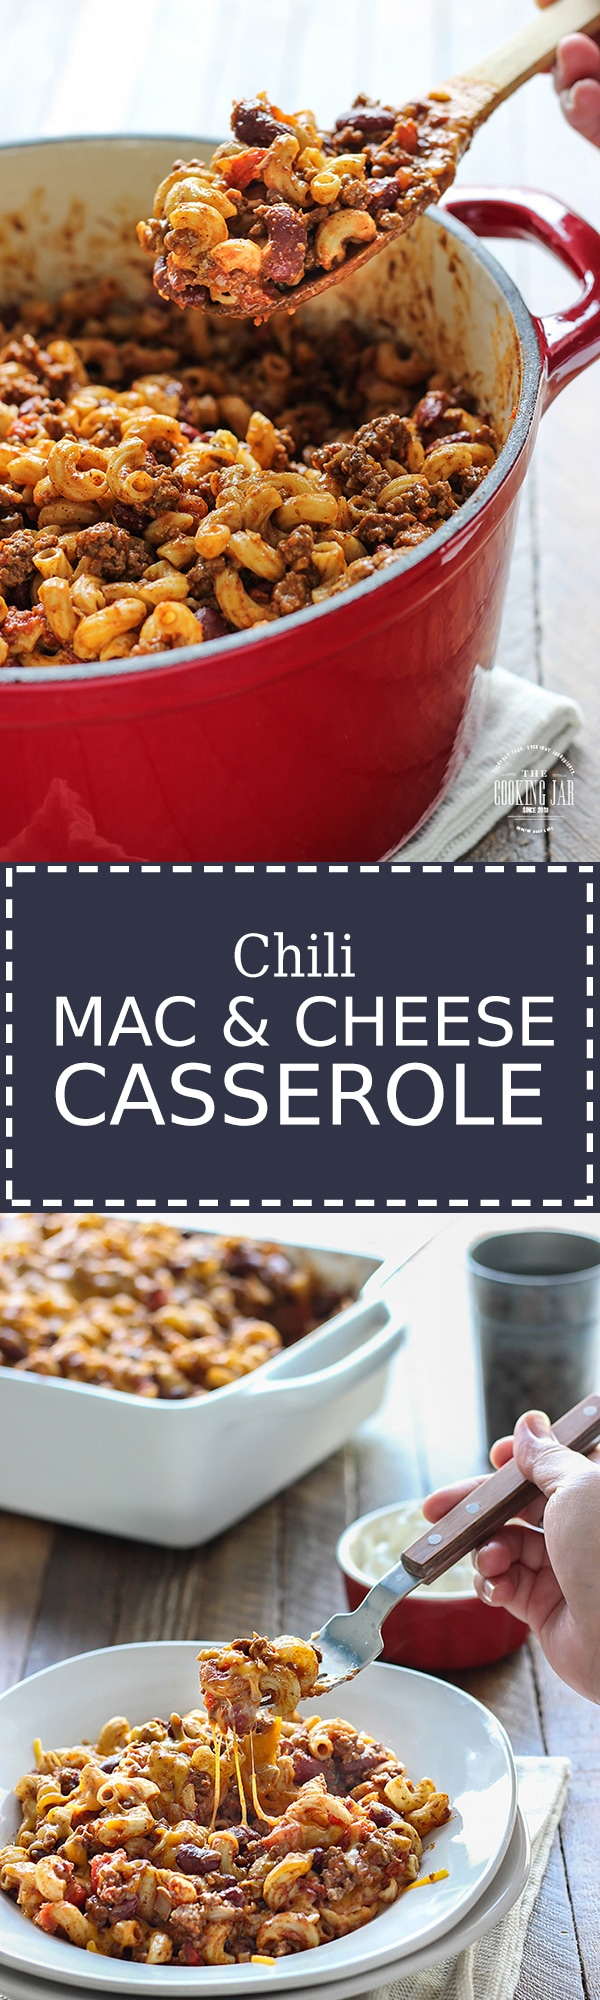 This delicious chili mac and cheese casserole with ground beef, diced tomatoes, chili beans, pasta and cheese is the perfect comfort food for winter.